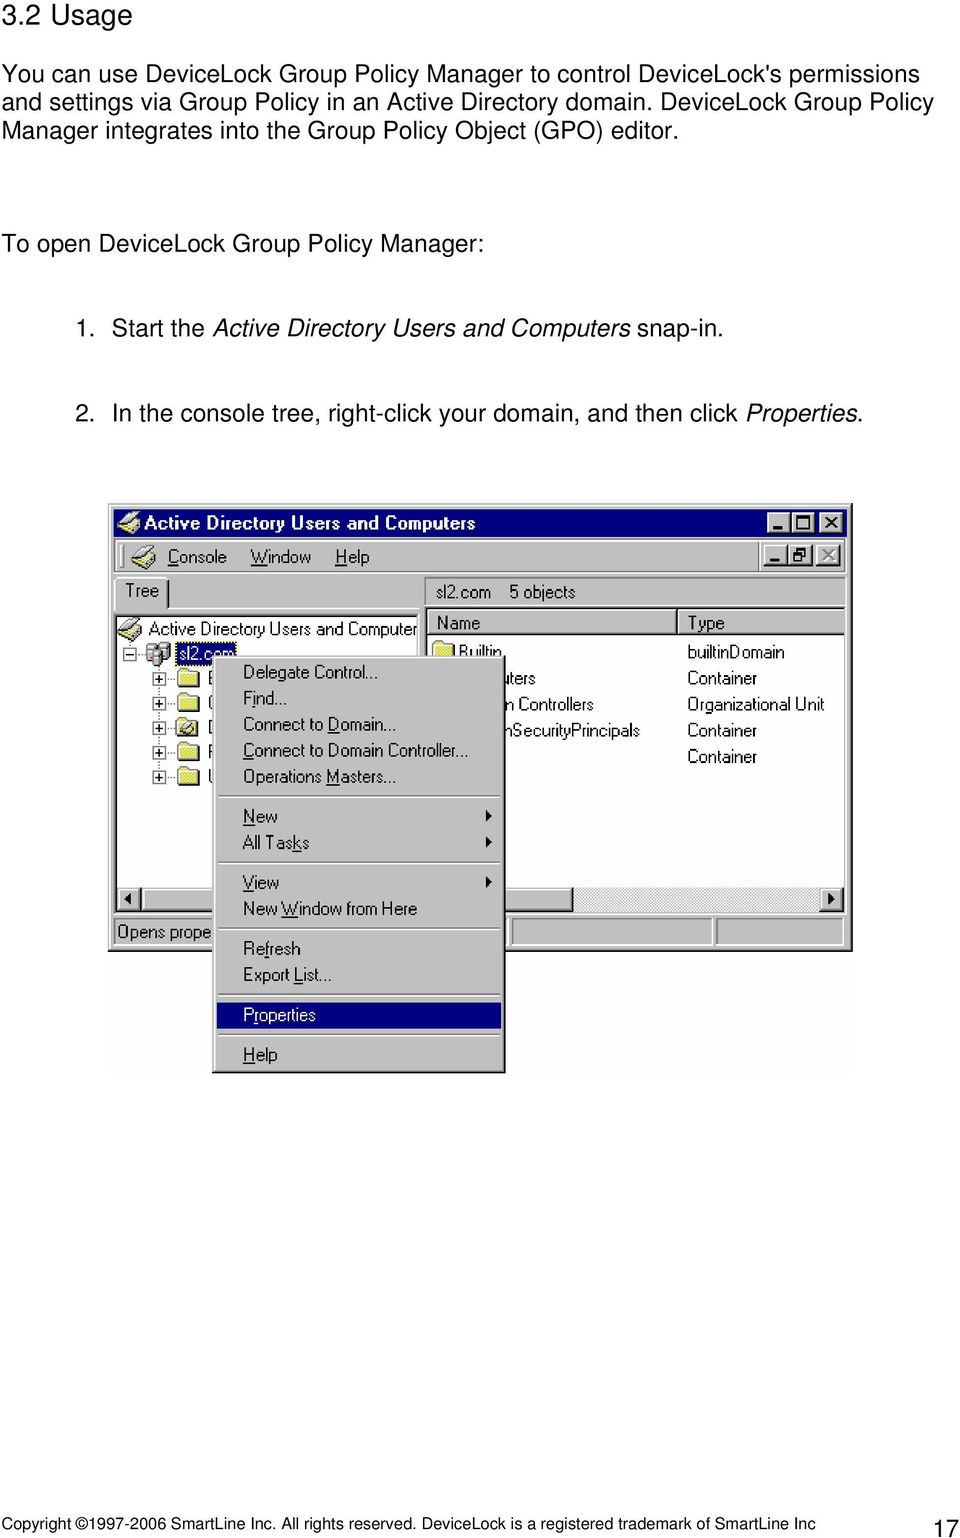 DeviceLock Group Policy Manager integrates into the Group Policy Object (GPO) editor.